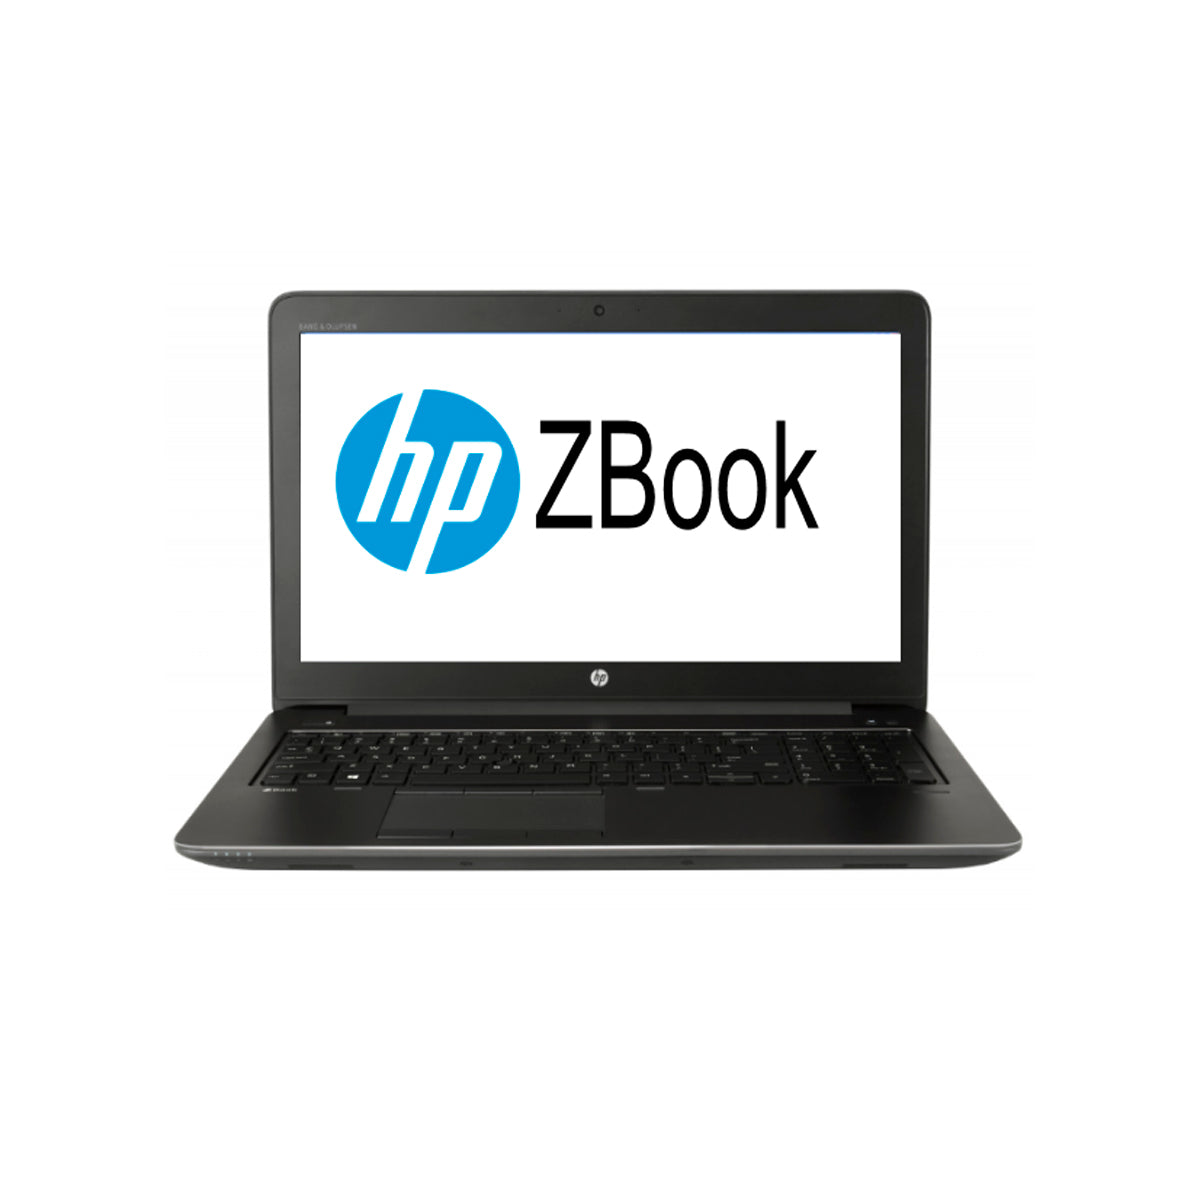 Portátil Seminovo HP Zbook G3 8GB i7 6820 HQ 512GB SSD 15.6